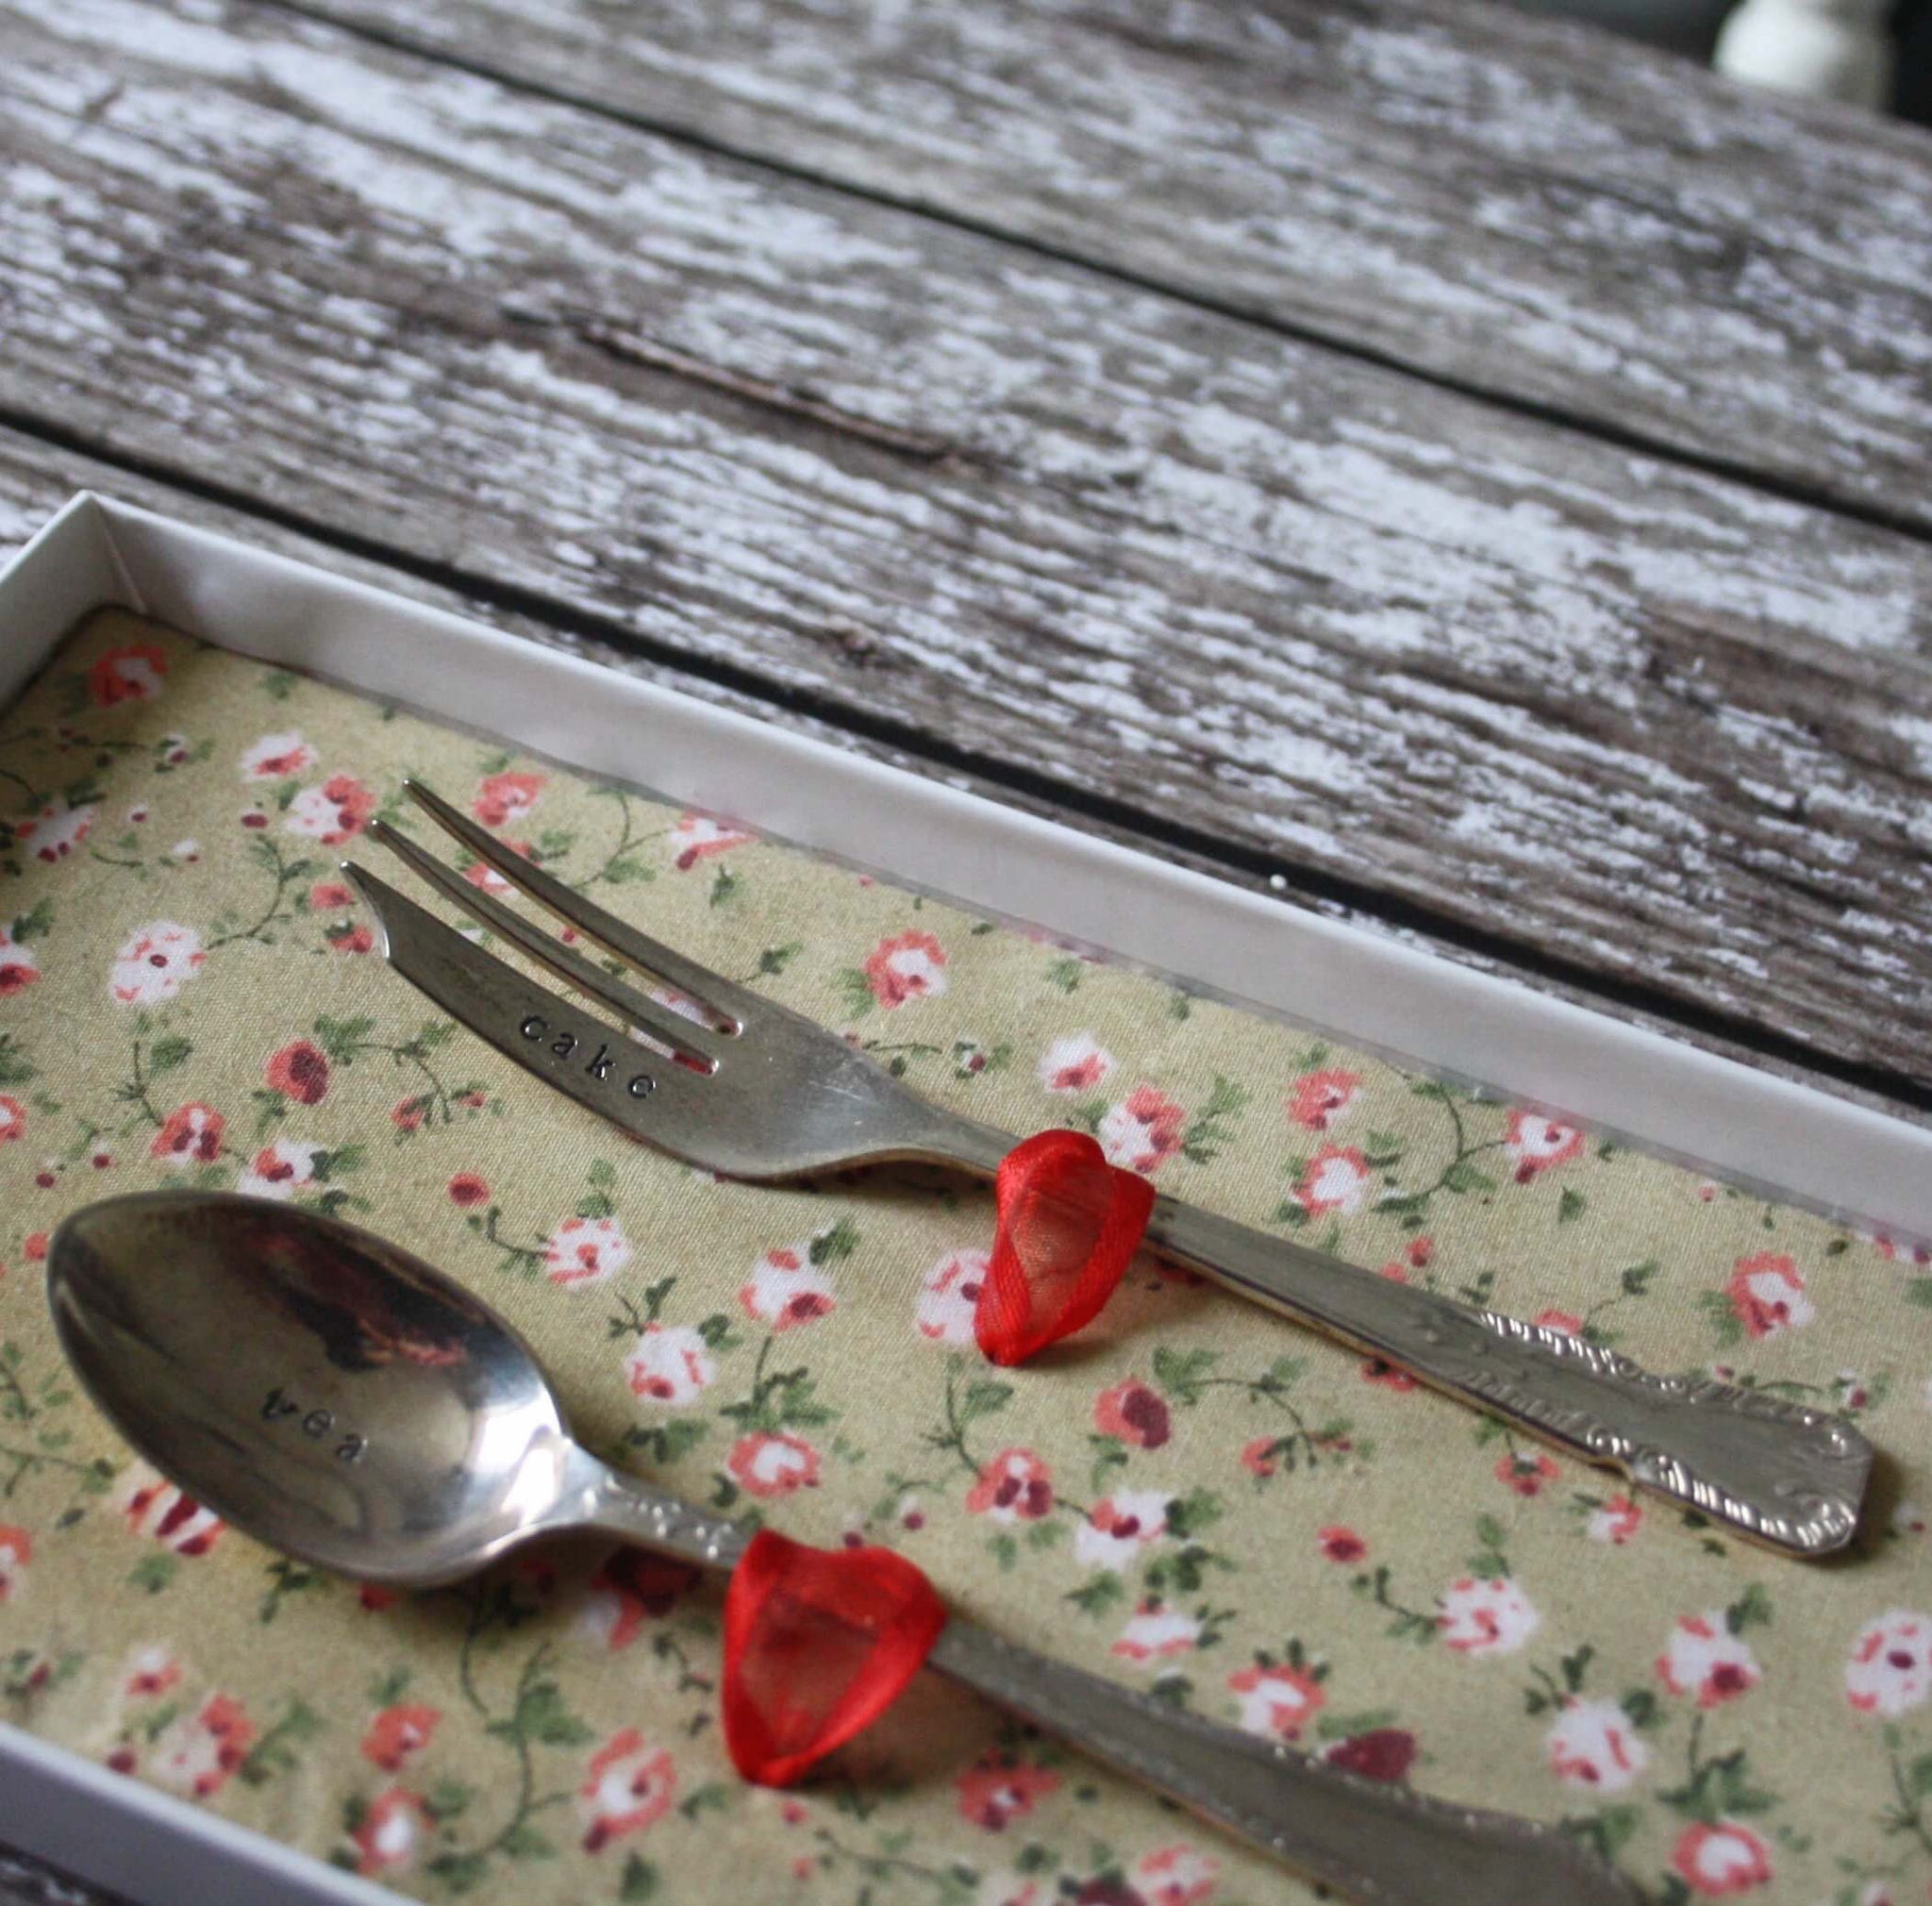 'Tea & Cake' vintage stamped cutlery sets - Dales Country Interiors